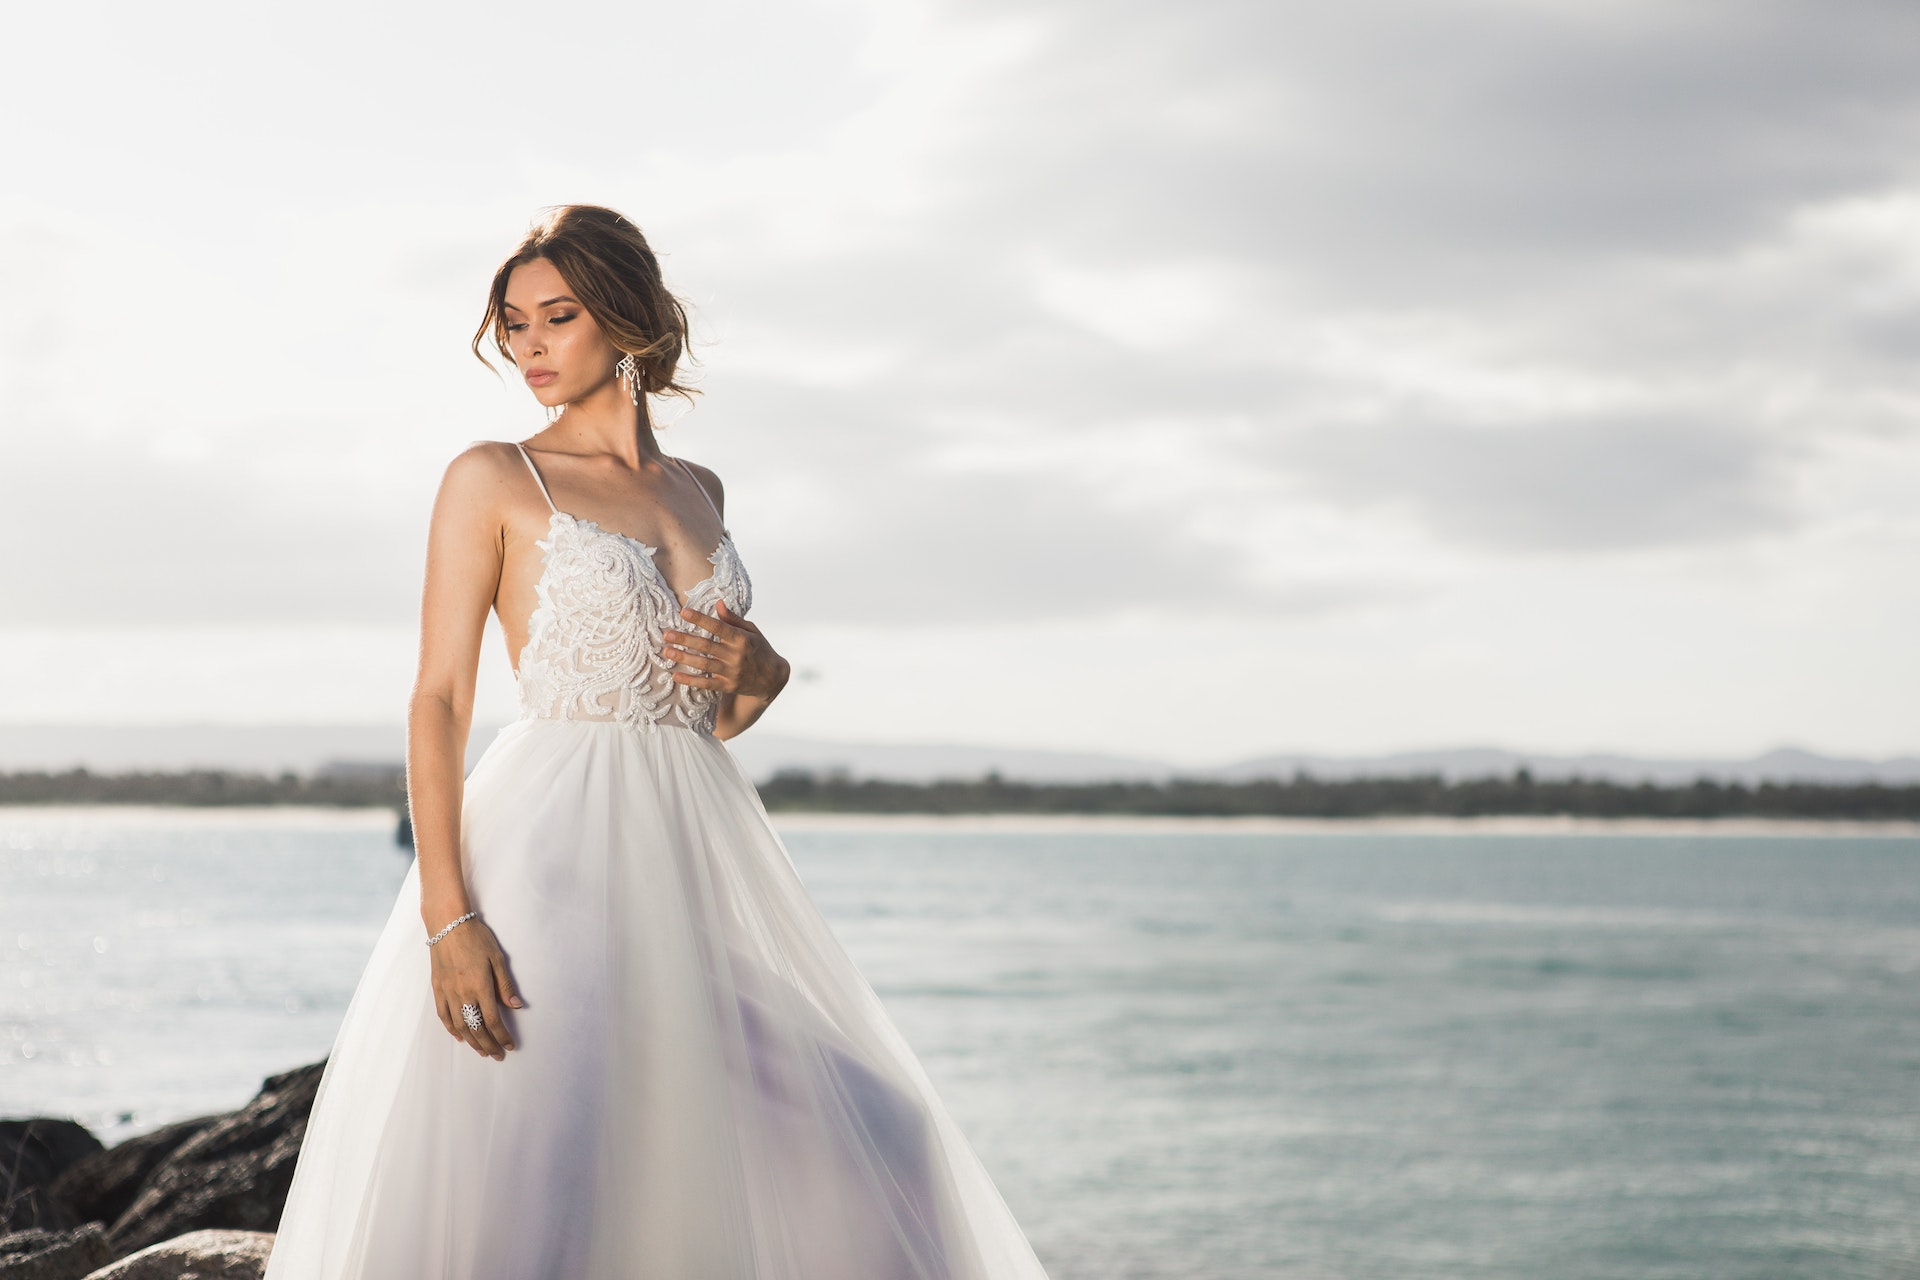 The Wedding Dress Deep Dive You Totally Need in Your Life